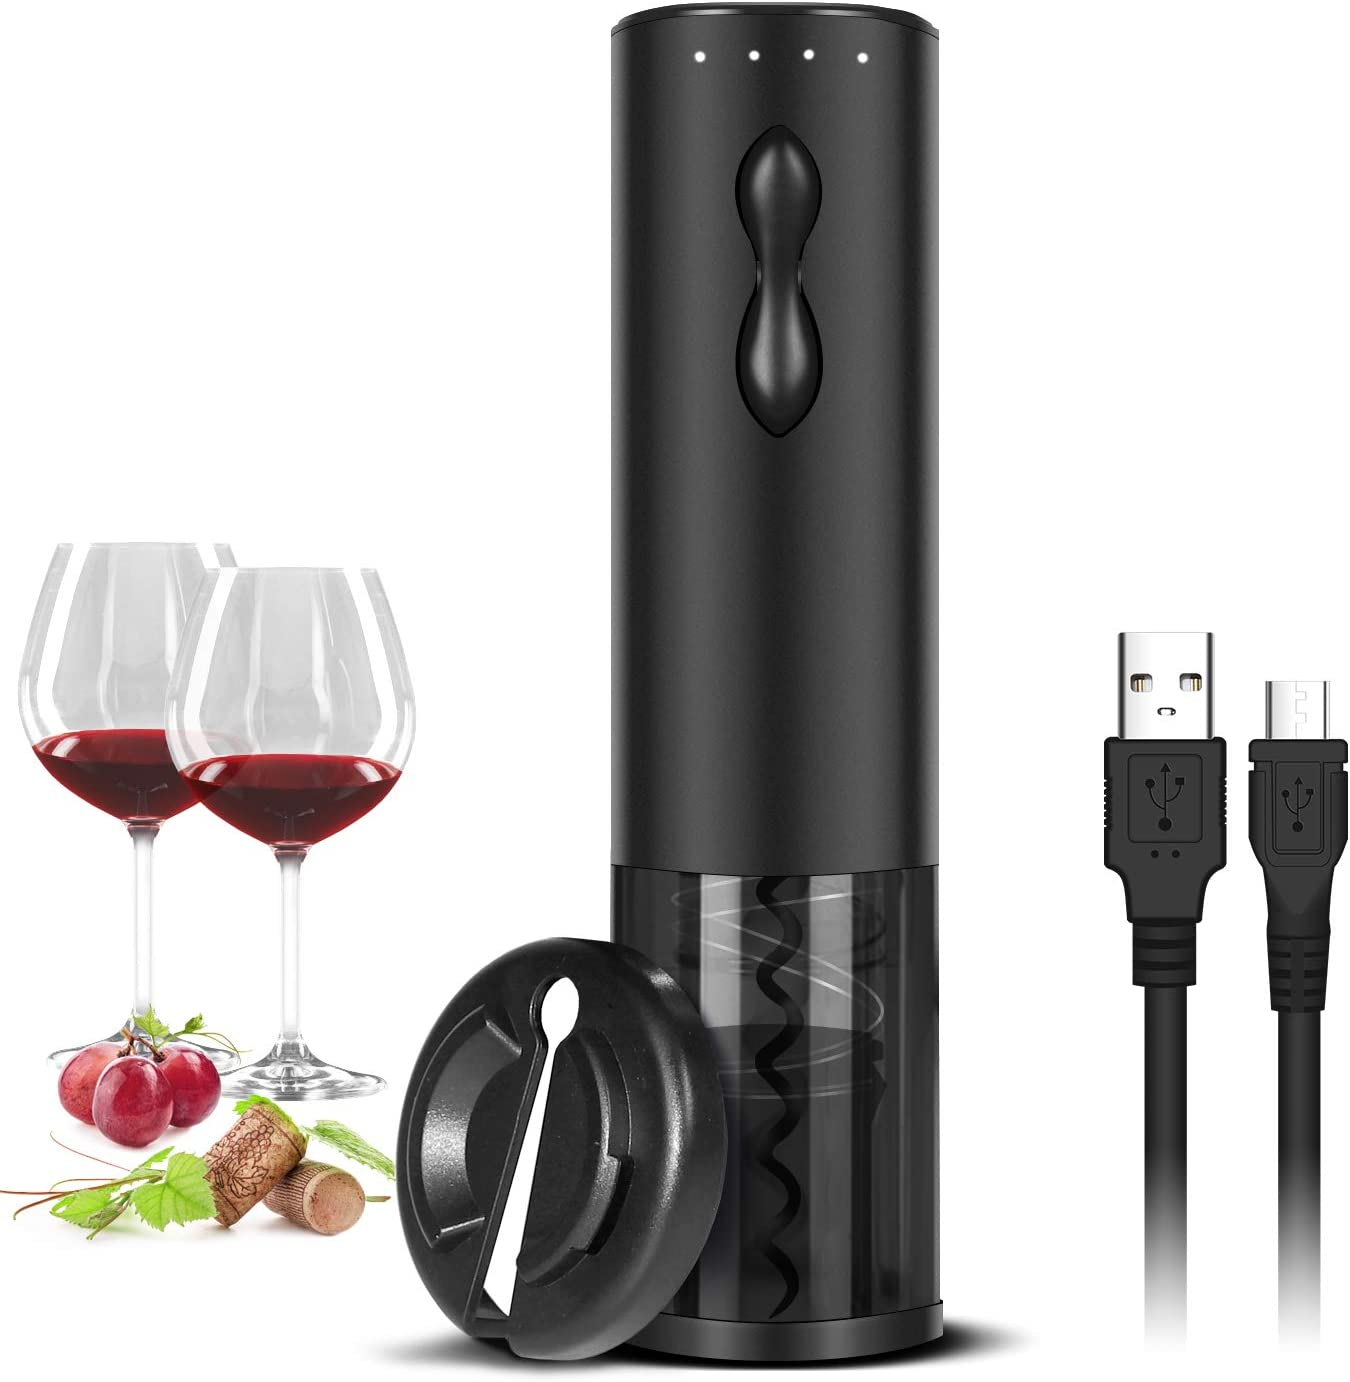 Electric Wine Opener Rechargeable Automatic Corkscrew Wine Bottle Openers with Foil Cutter and USB Cable, Black